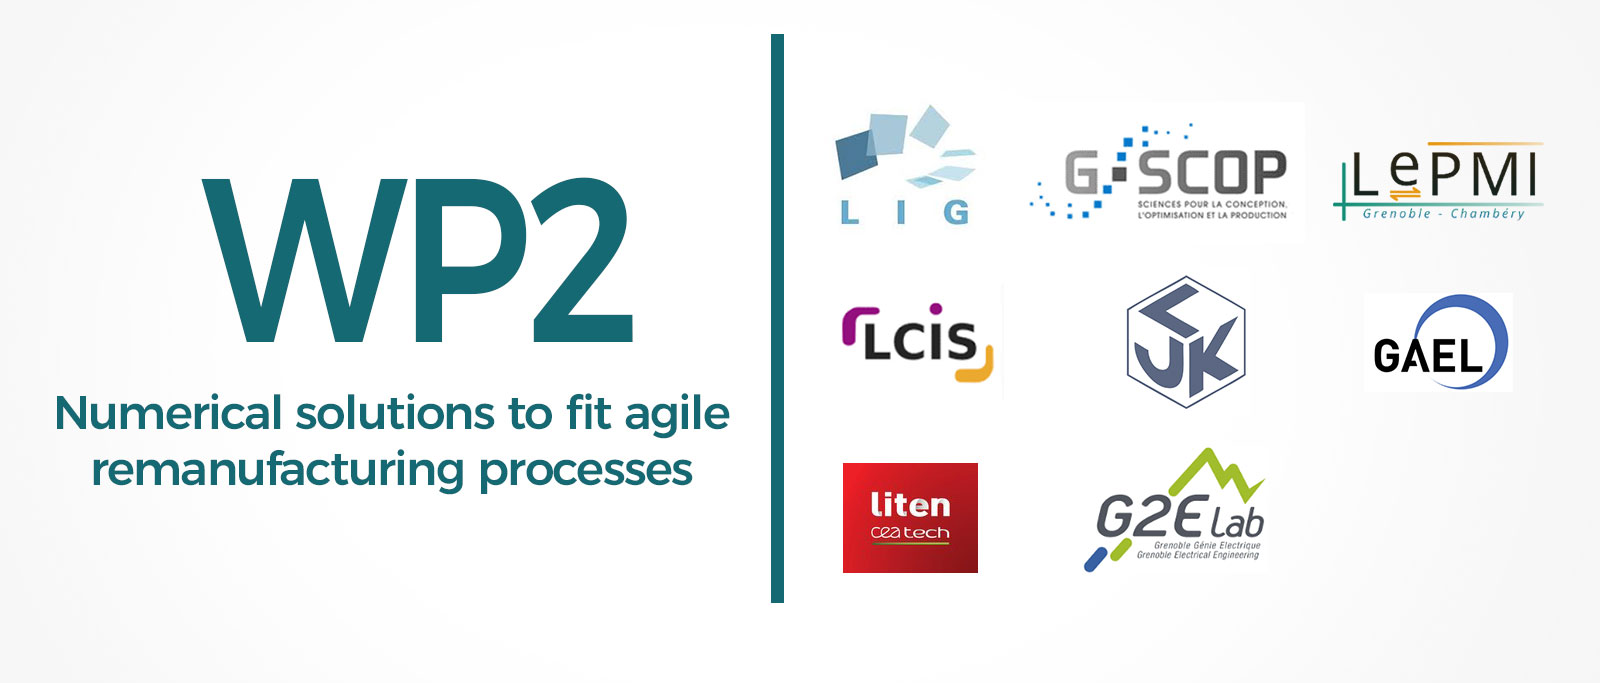 WP2: Numerical solutions to fit agile remanufacturing processes